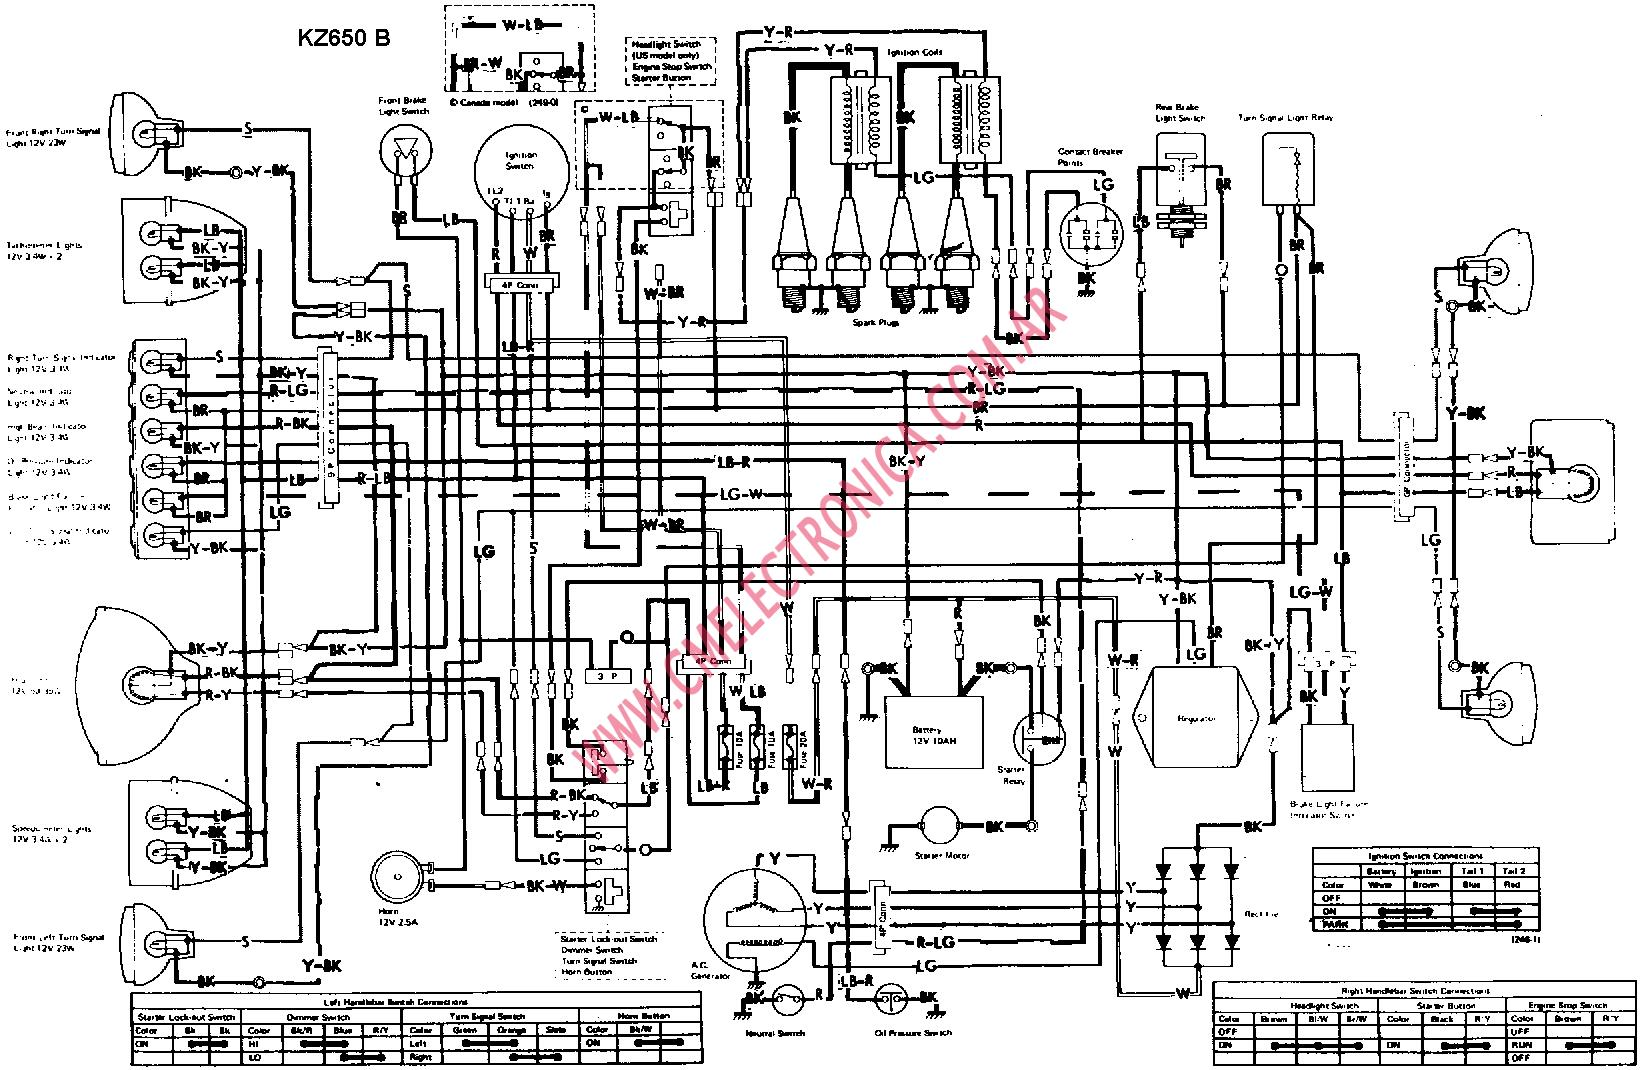 Chopper Wiring Diagram likewise 1894 further Kawasaki Kz650 b likewise Diagrama De Fusibles Ford Explorer 1998 further Kdx 175 Wiring Diagram Diagrams And Schematics. on kawasaki wiring schematics